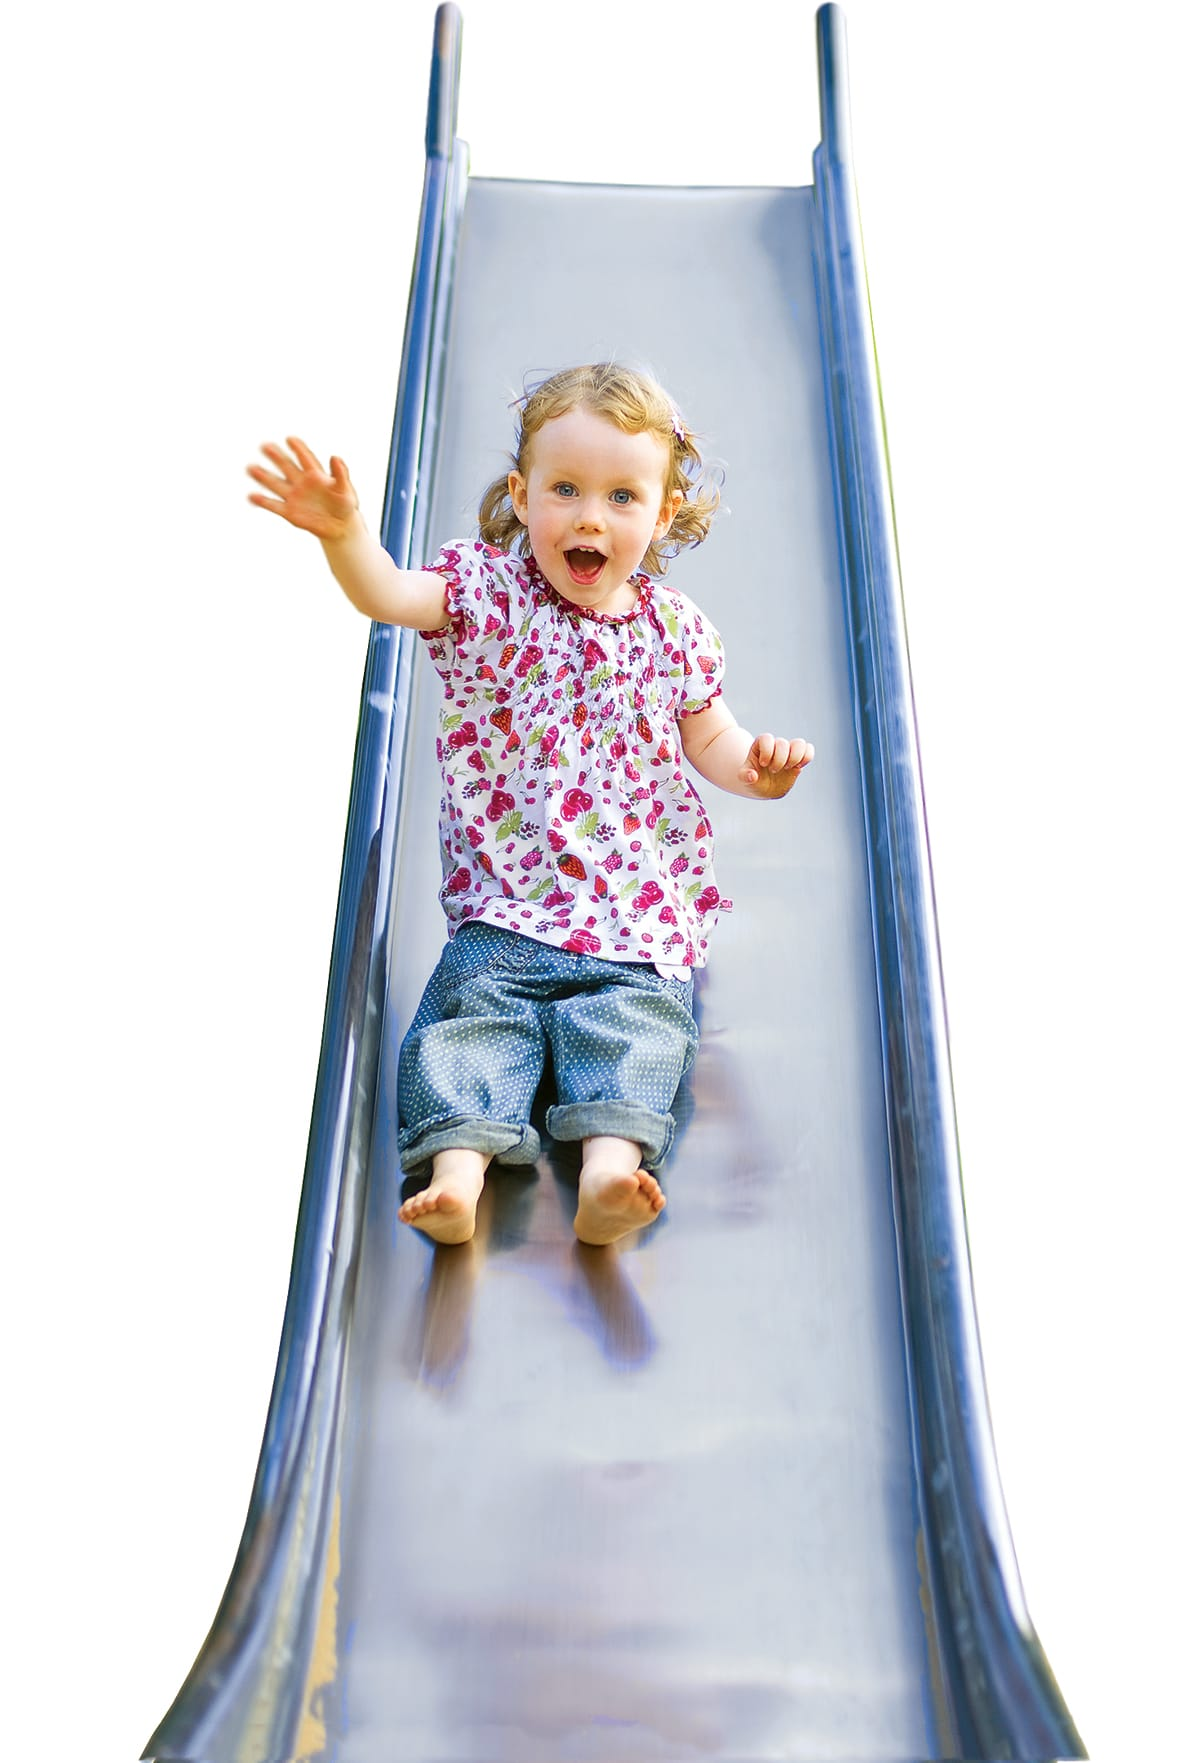 slide, child, parenting, family, diana winston, lion's roar, buddhism, shambhala sun, magazine